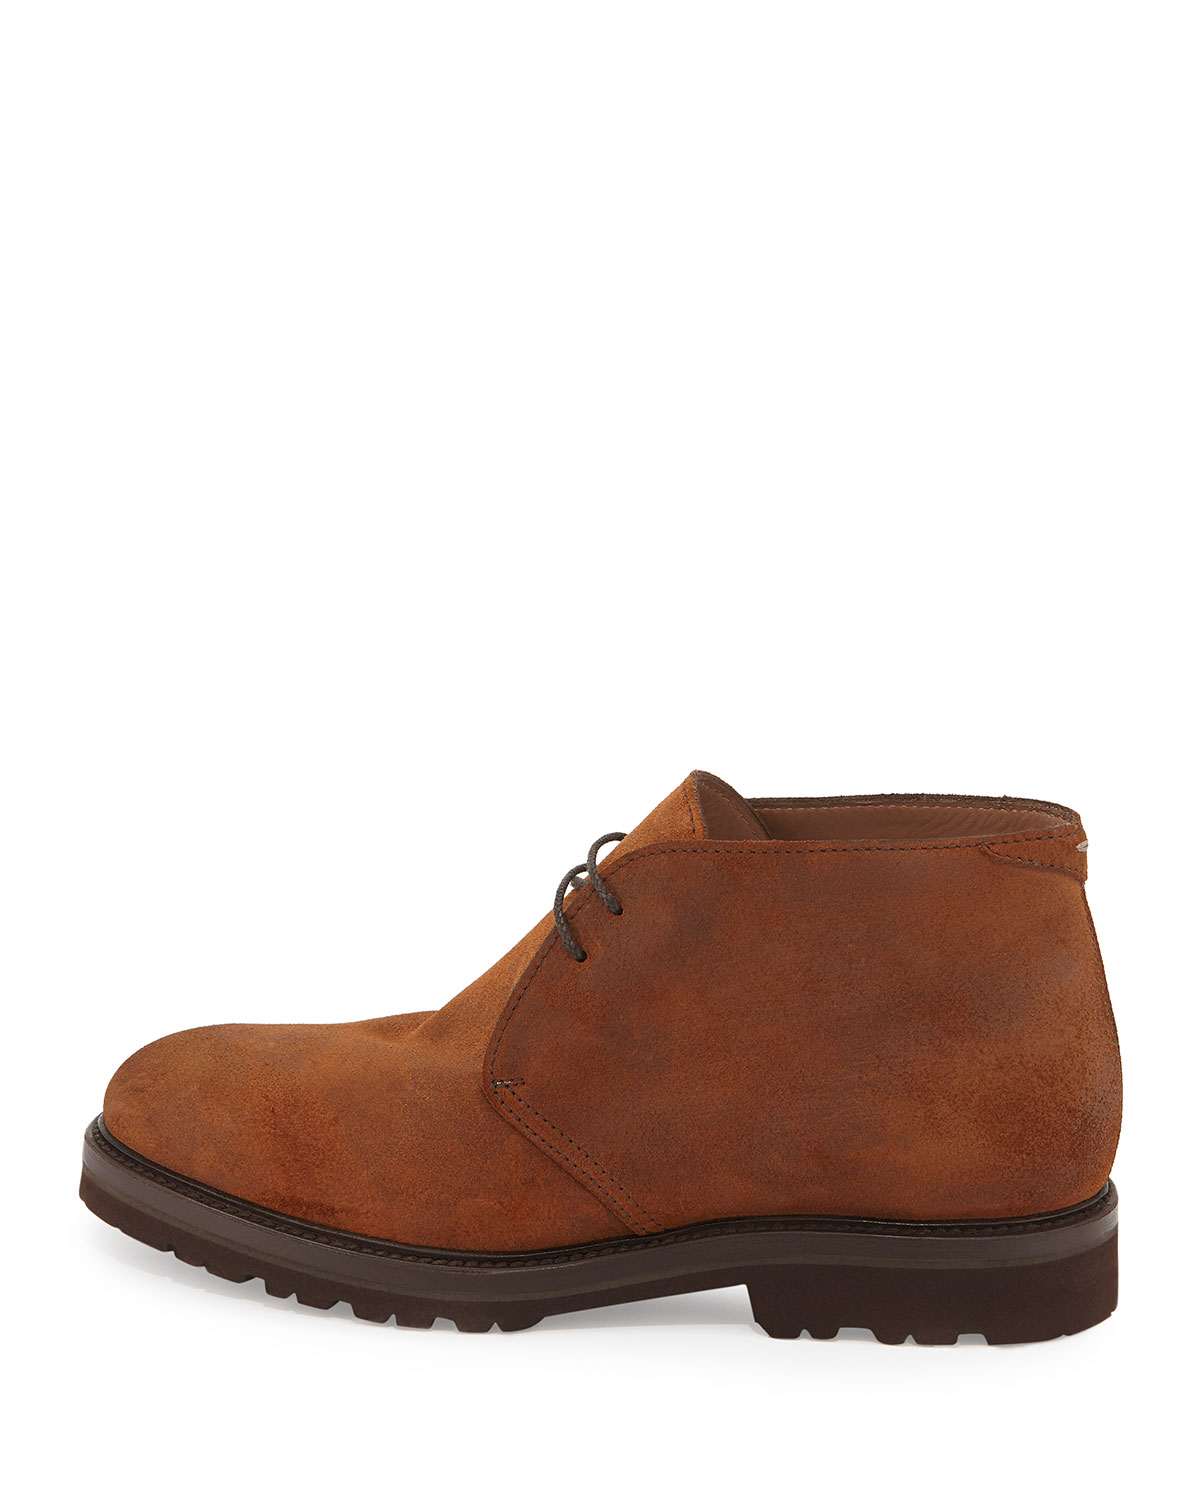 Brunello Cucinelli Suede Chukka Boots 2014 unisex sale online outlet for cheap free shipping order prices online DOFbsM